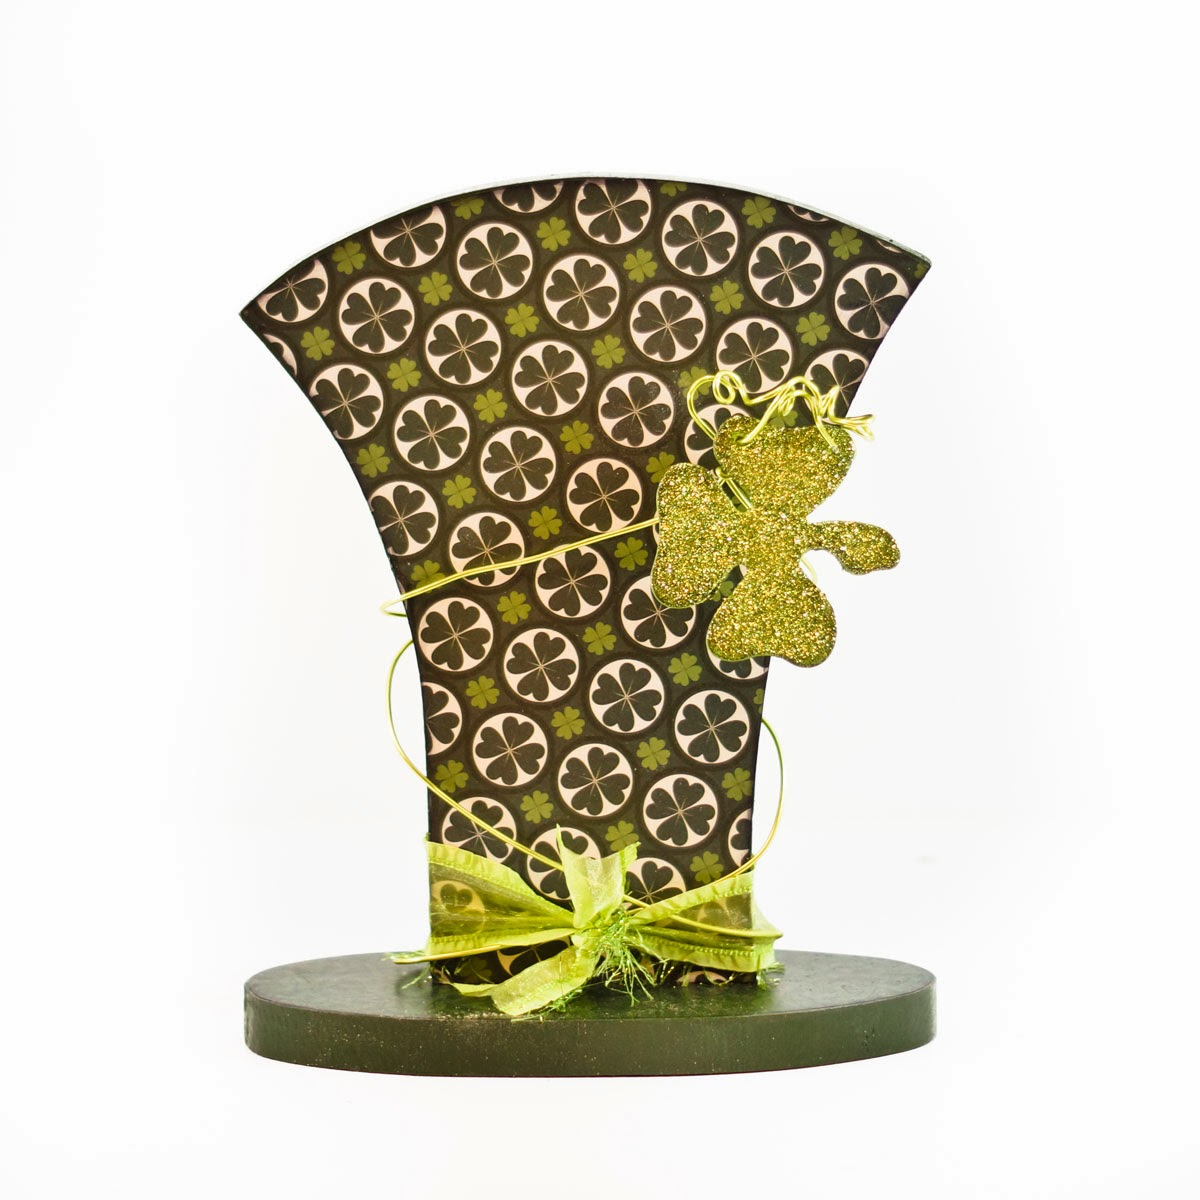 WOOD Creations: St. Patrick's Day Crafts Are Here!